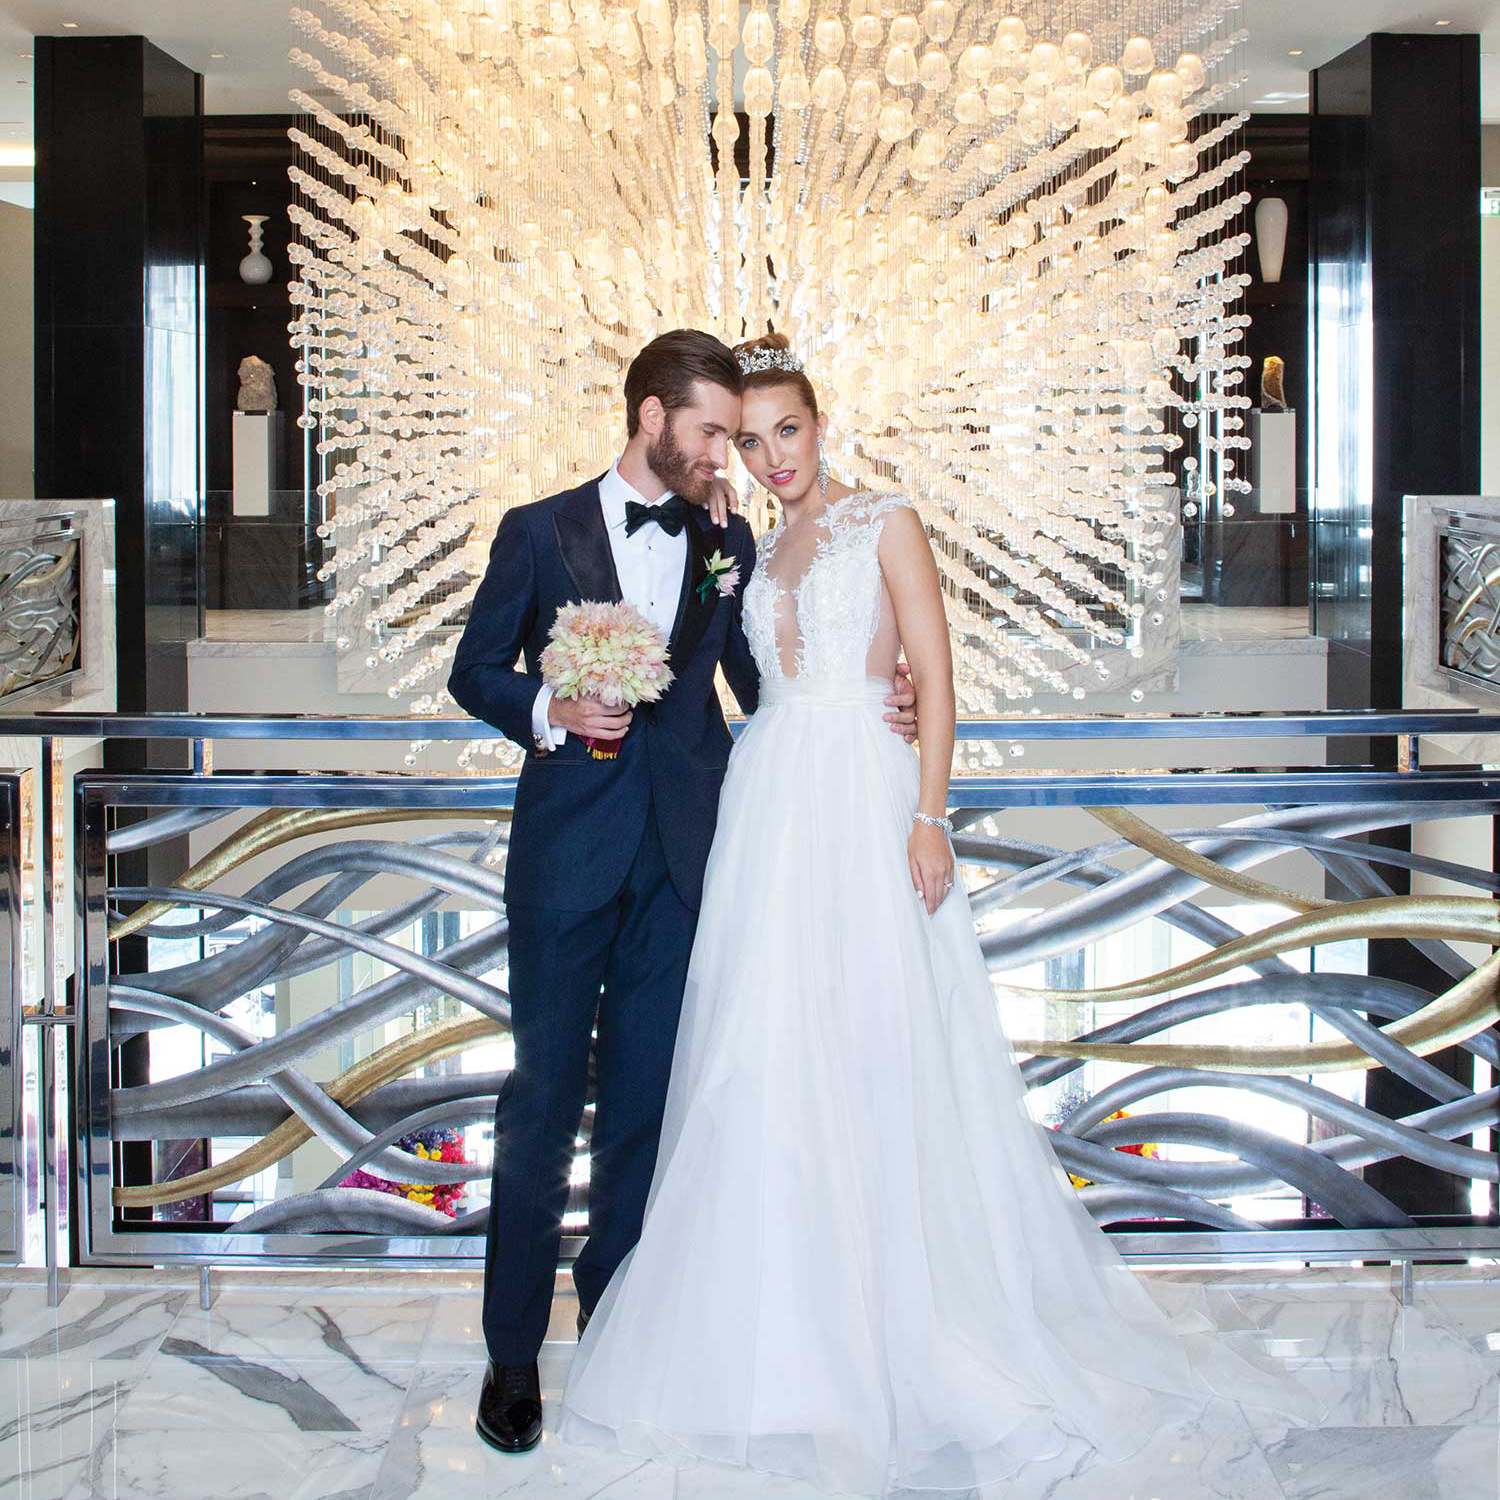 Modern upscale wedding at Houston's 5 Star Hotel wedding venue - The Post Oak Hotel at Uptown Park - featuring The Events Co.